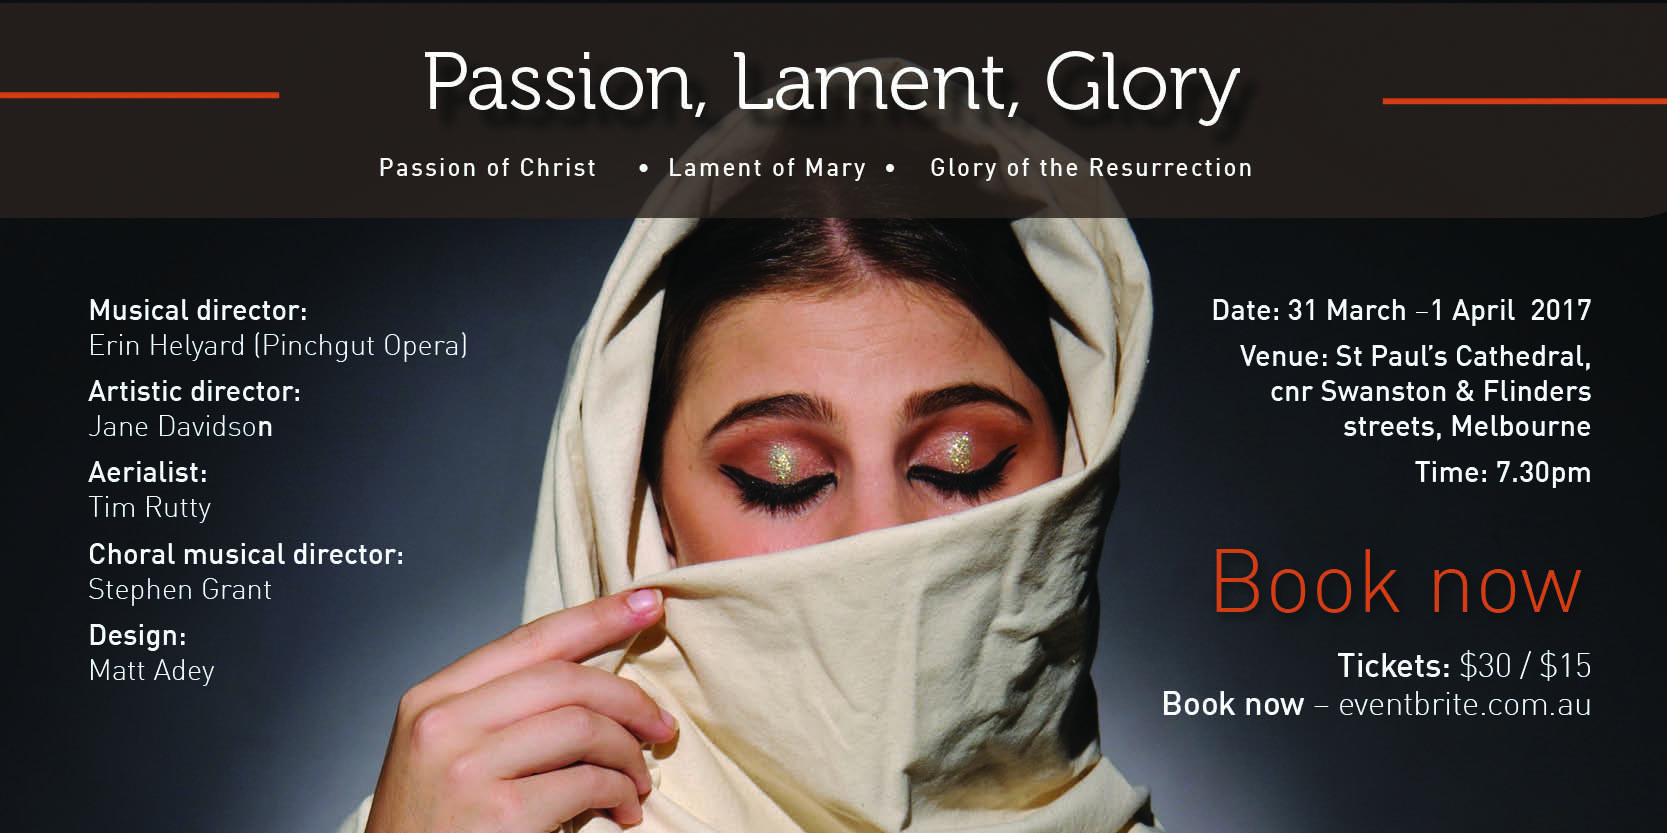 Passion, Lament, Glory production in Melbourne at St Paul's Cathedral